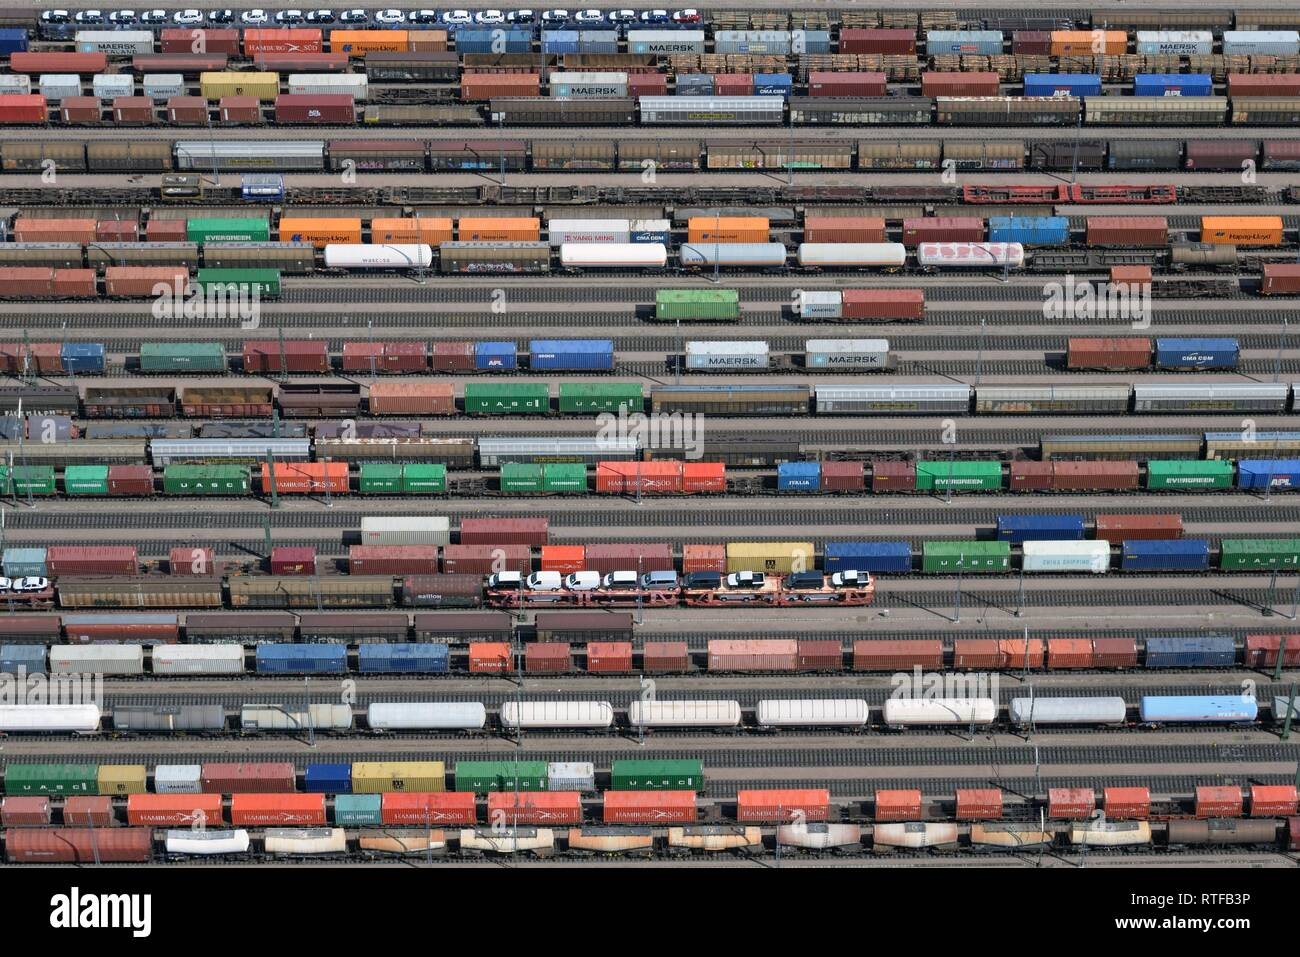 Aerial view, freight trains, waggons at Maschen marshalling yard, Lower Saxony, Germany - Stock Image